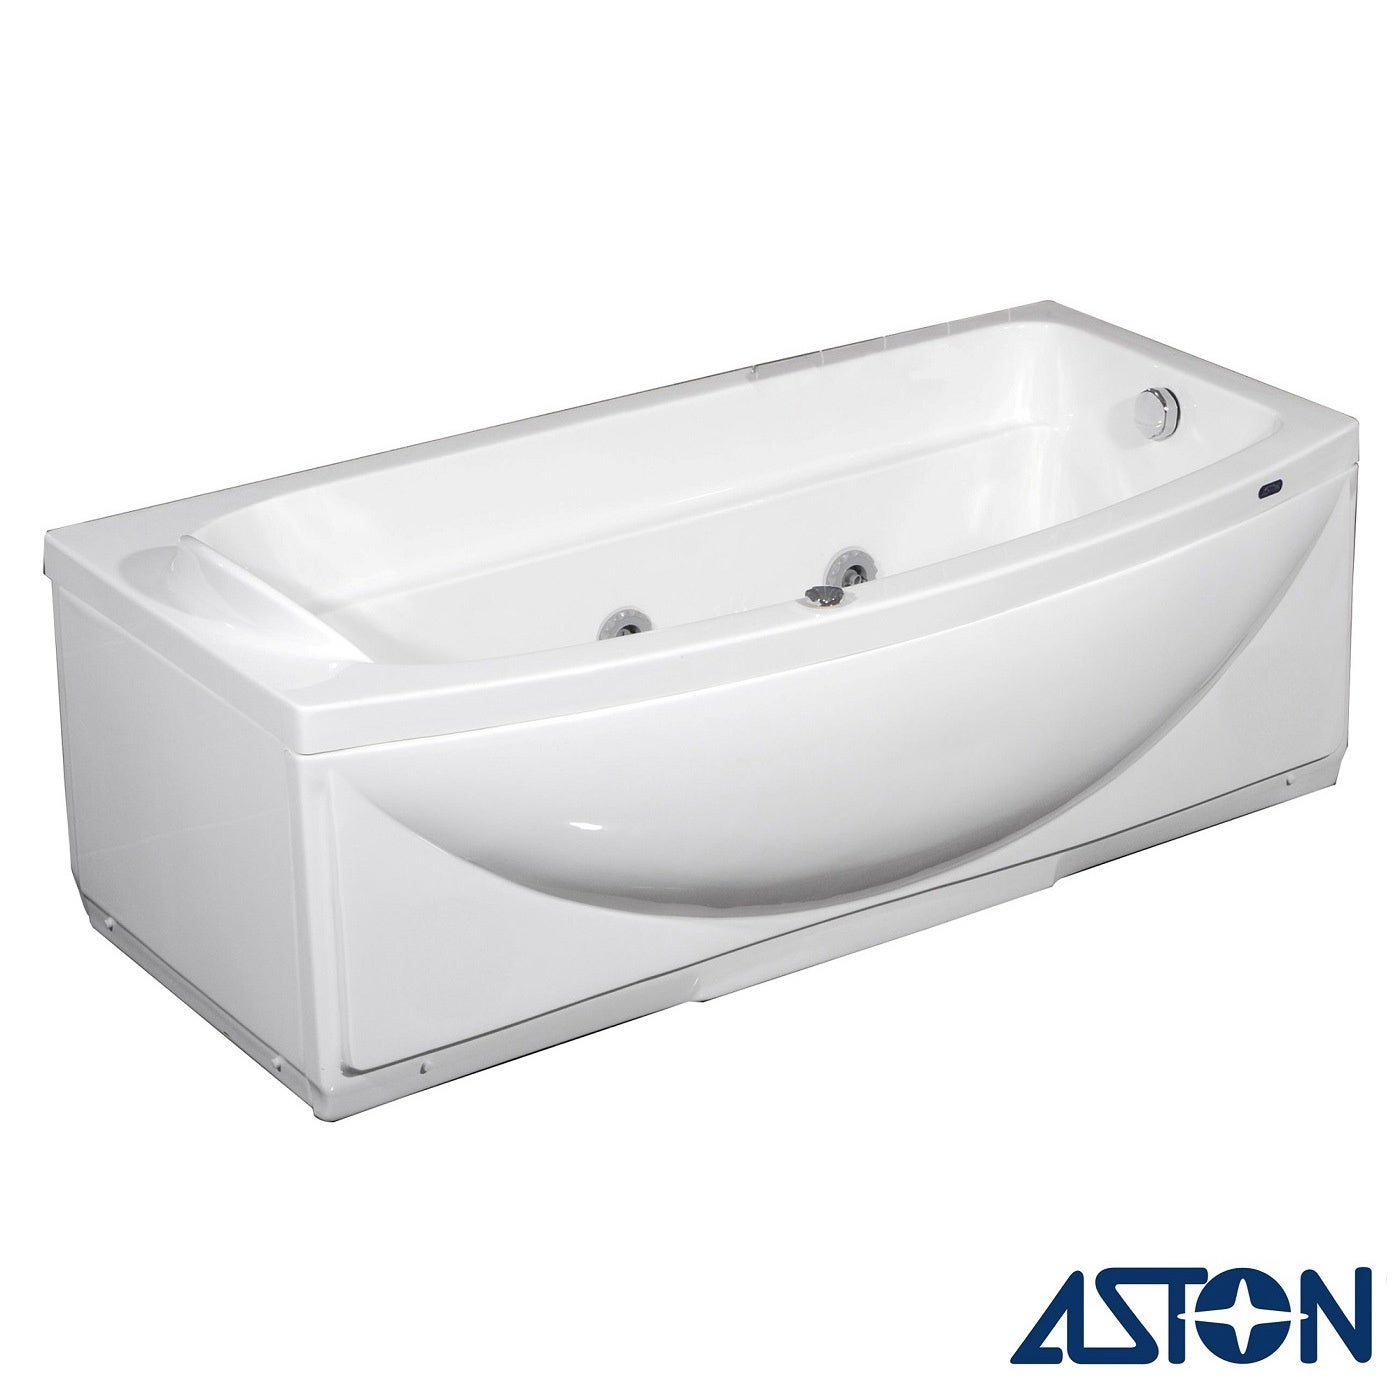 Shop Aston 34-in x 68-in Jetted Whirlpool Tub in White - Free ...